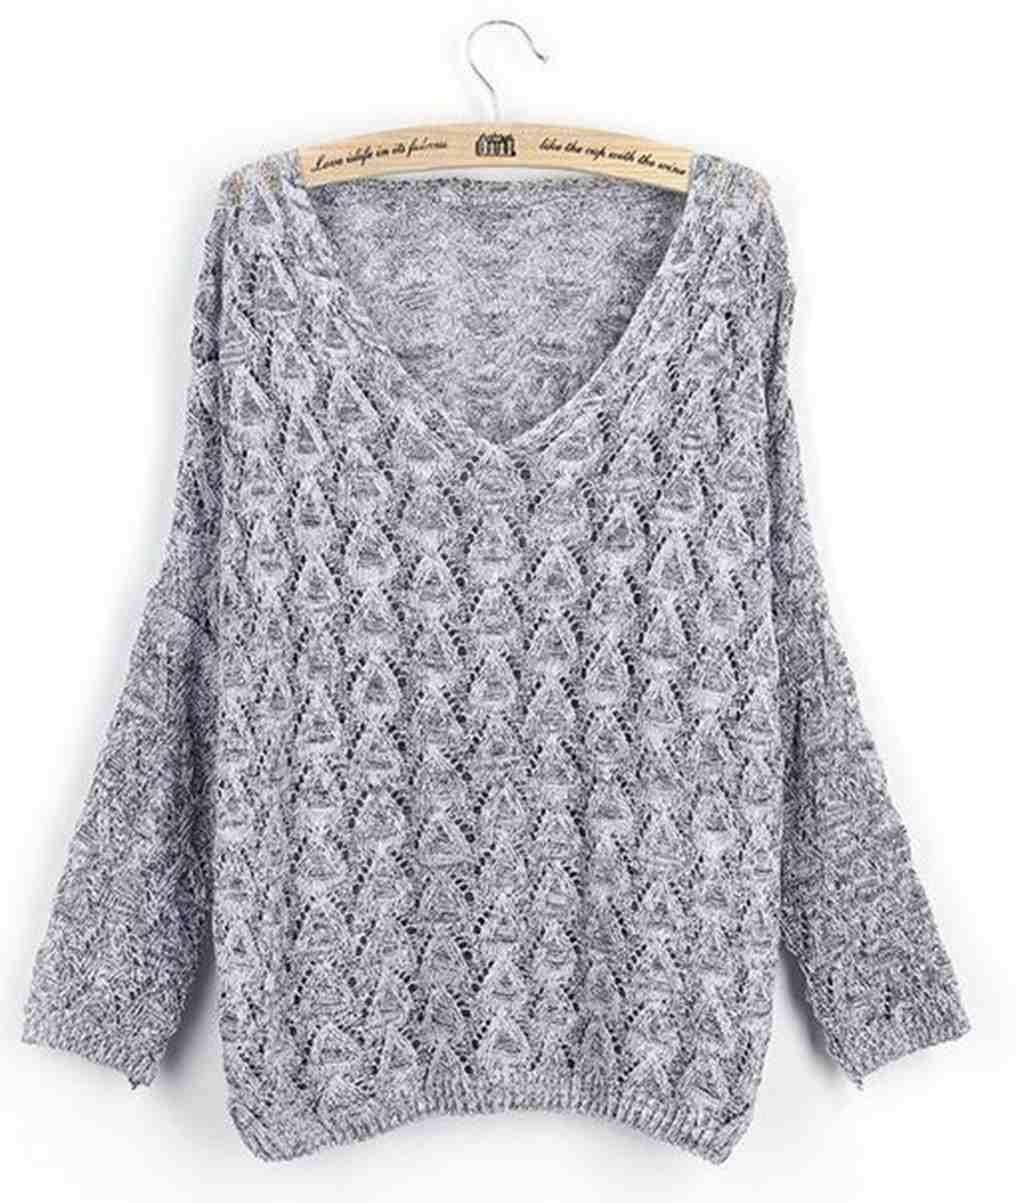 2017 New Look Womens Knitted Sweater Loose Pullover With Hollow ...